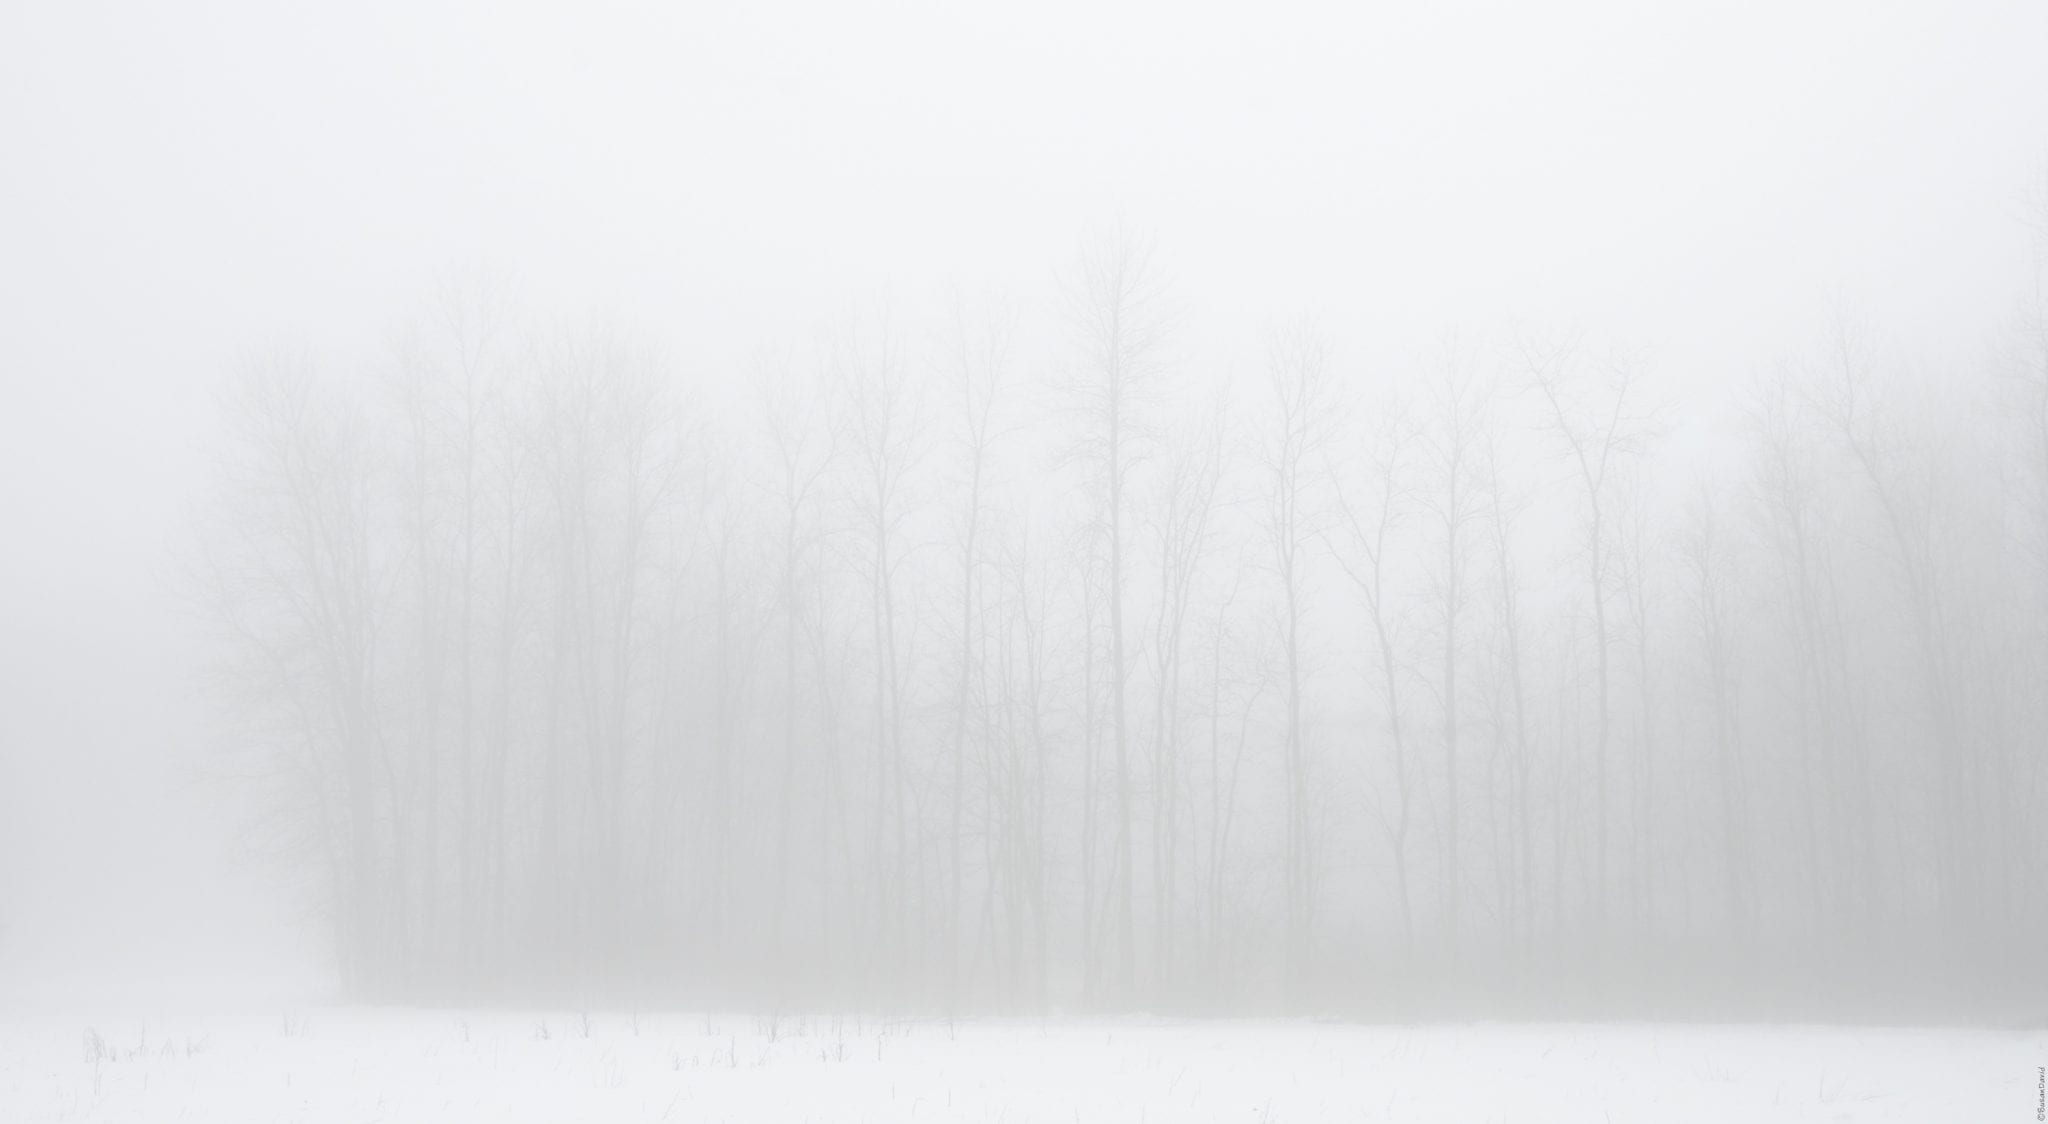 The-Ghostly-Forest.jpg